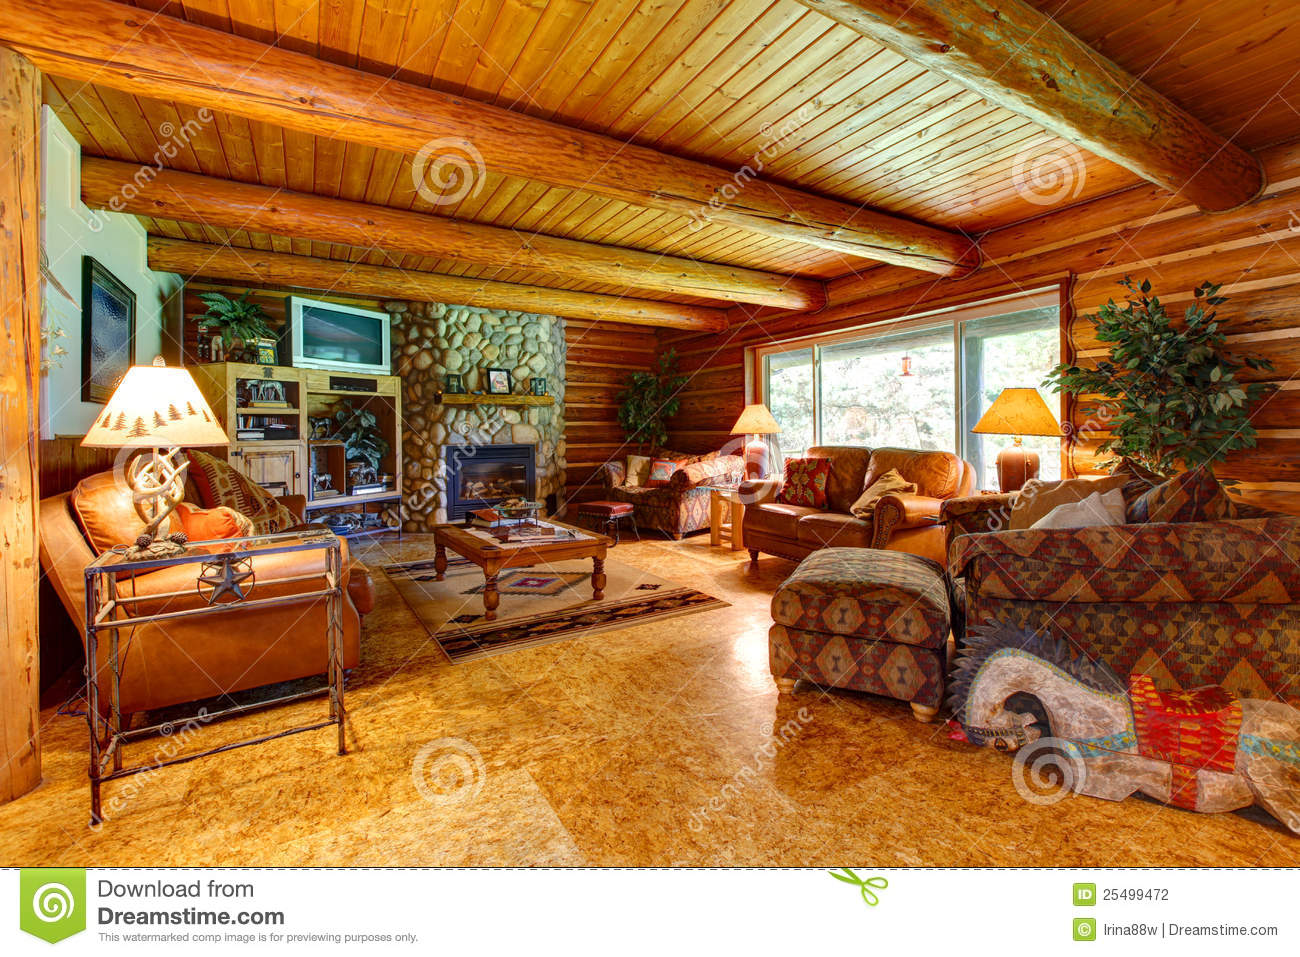 Log home photo album as well Banff Log Cabin Guesthouse together with Stock Images Log Cabin Home Interior Warm Fireplace Wood Flames Image479764 further Rustic Decorating Ideas For Living Rooms moreover Stock Photography Log Cabin Living Room Interior Image25499472. on rustic log cabin living area